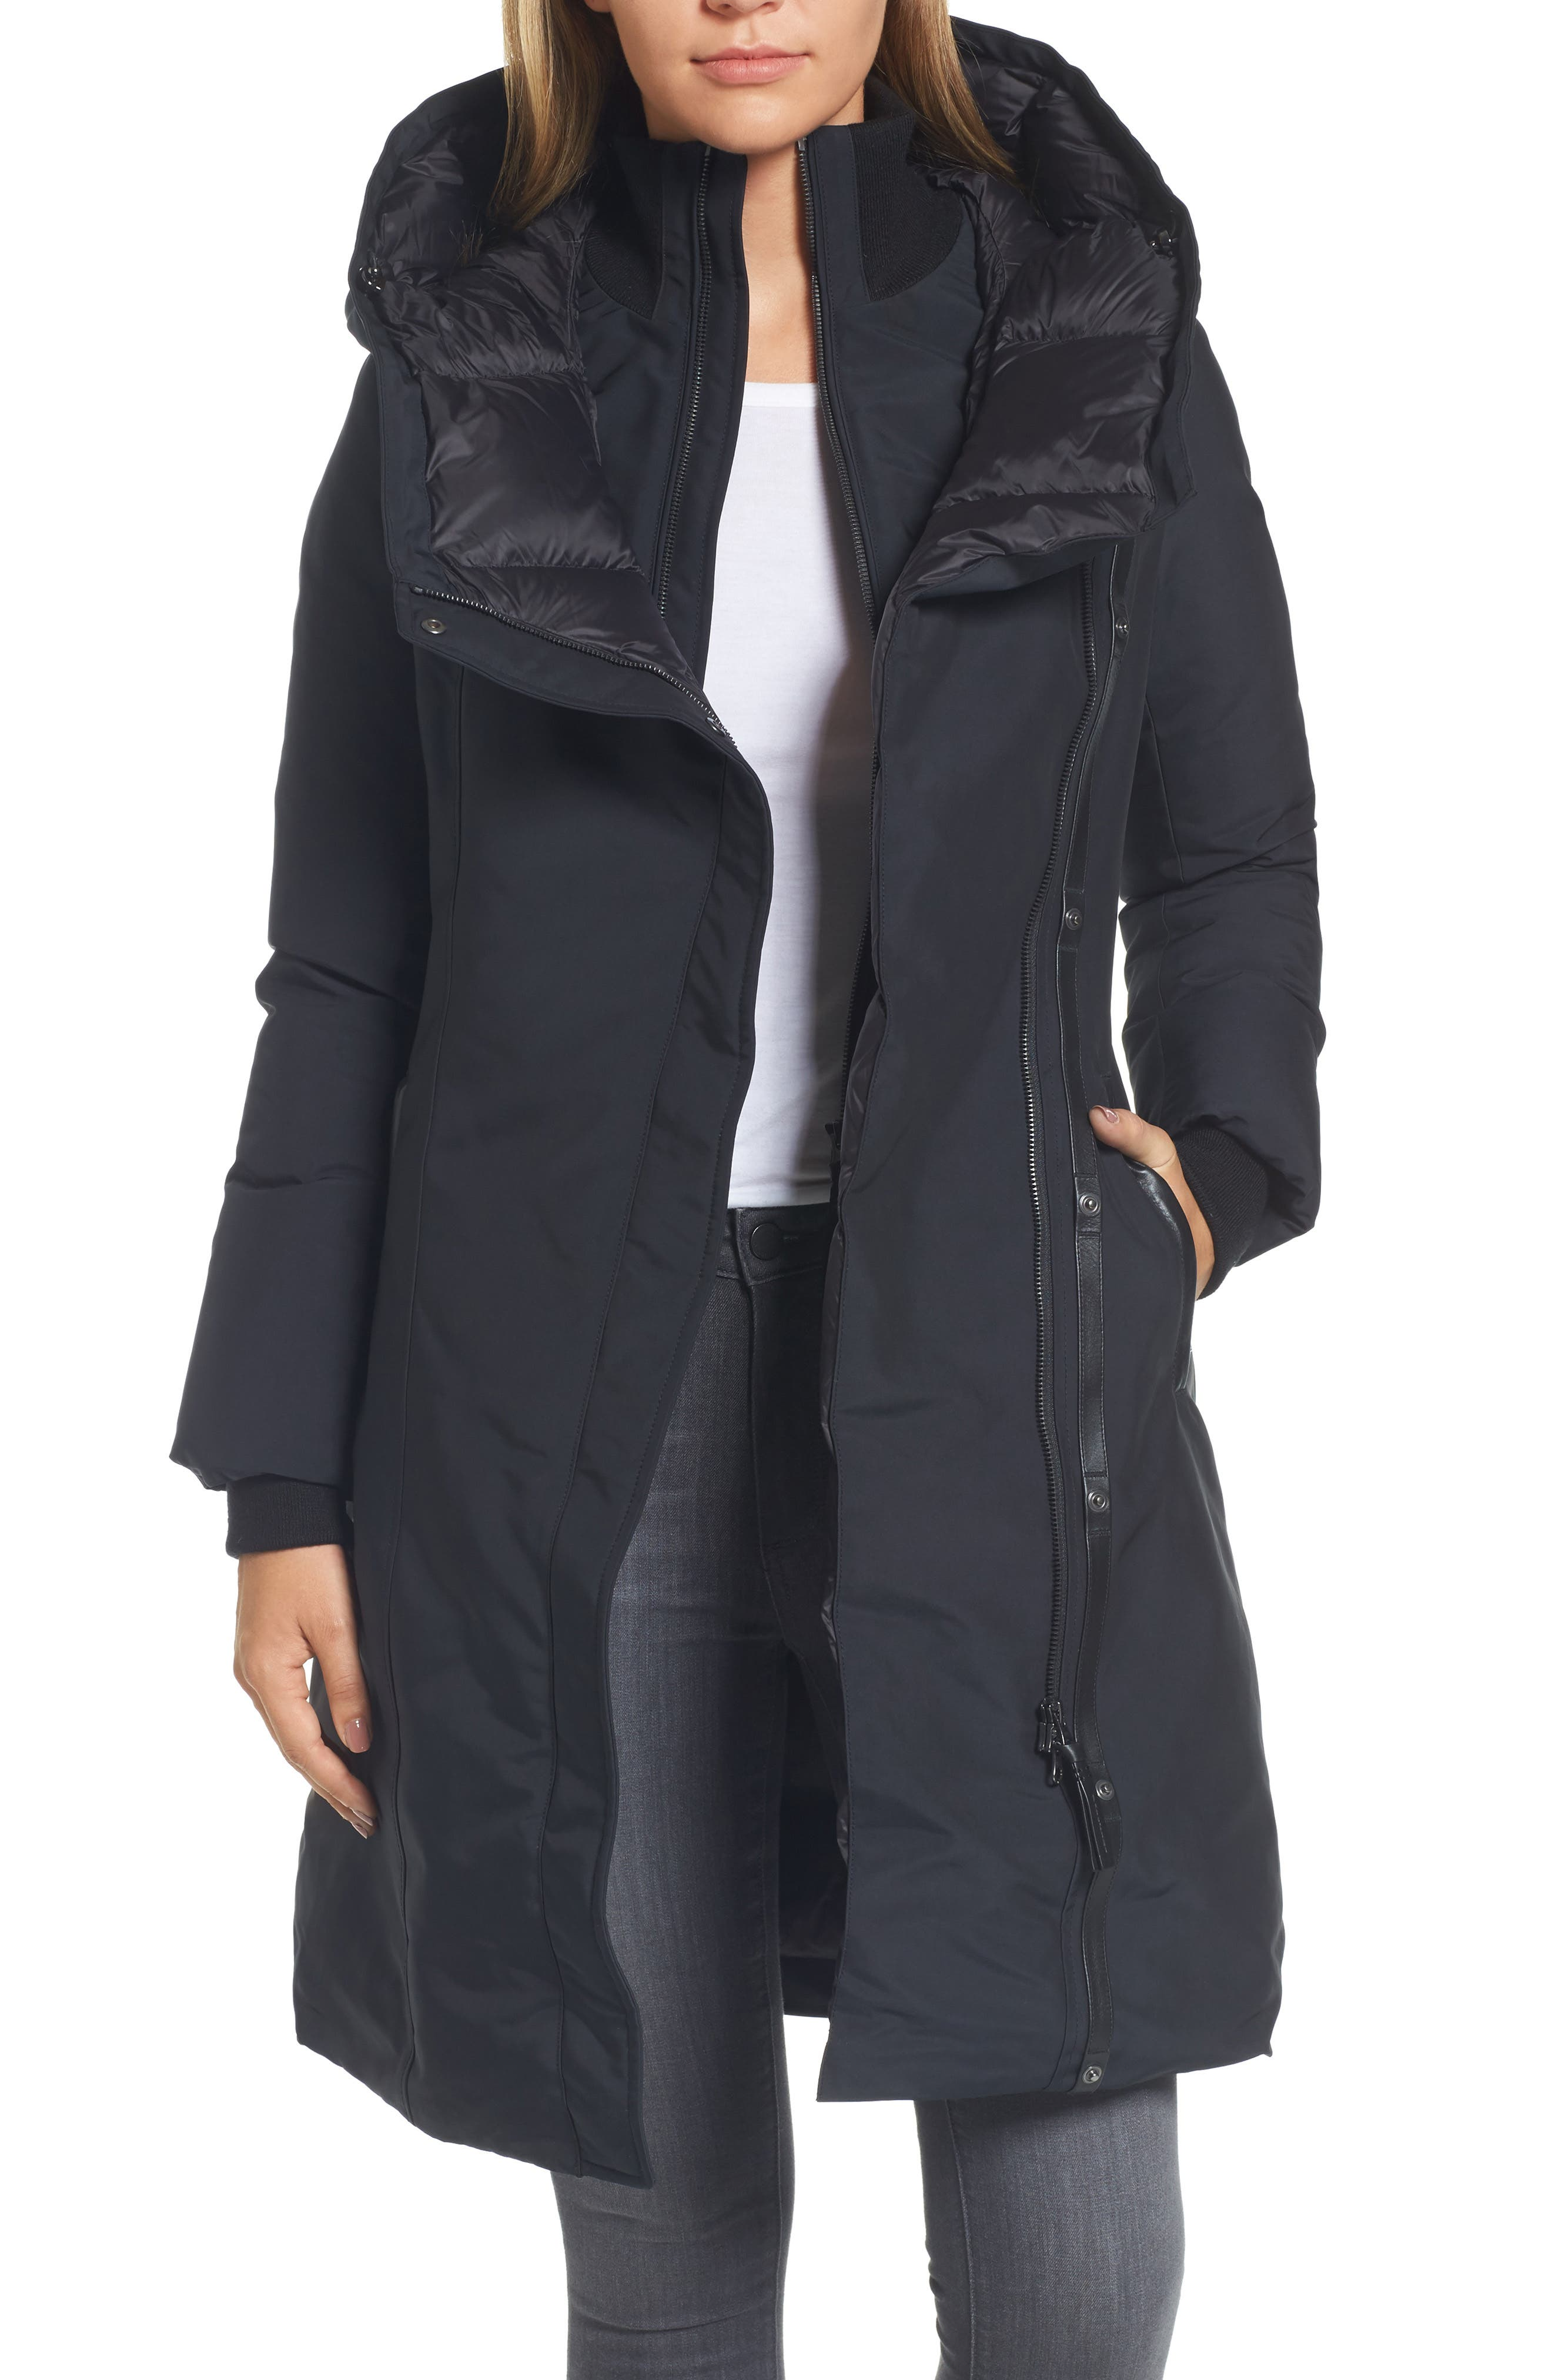 Alternate Image 1 Selected - Mackage Hooded Asymmetrical Down Coat with Inset Bib